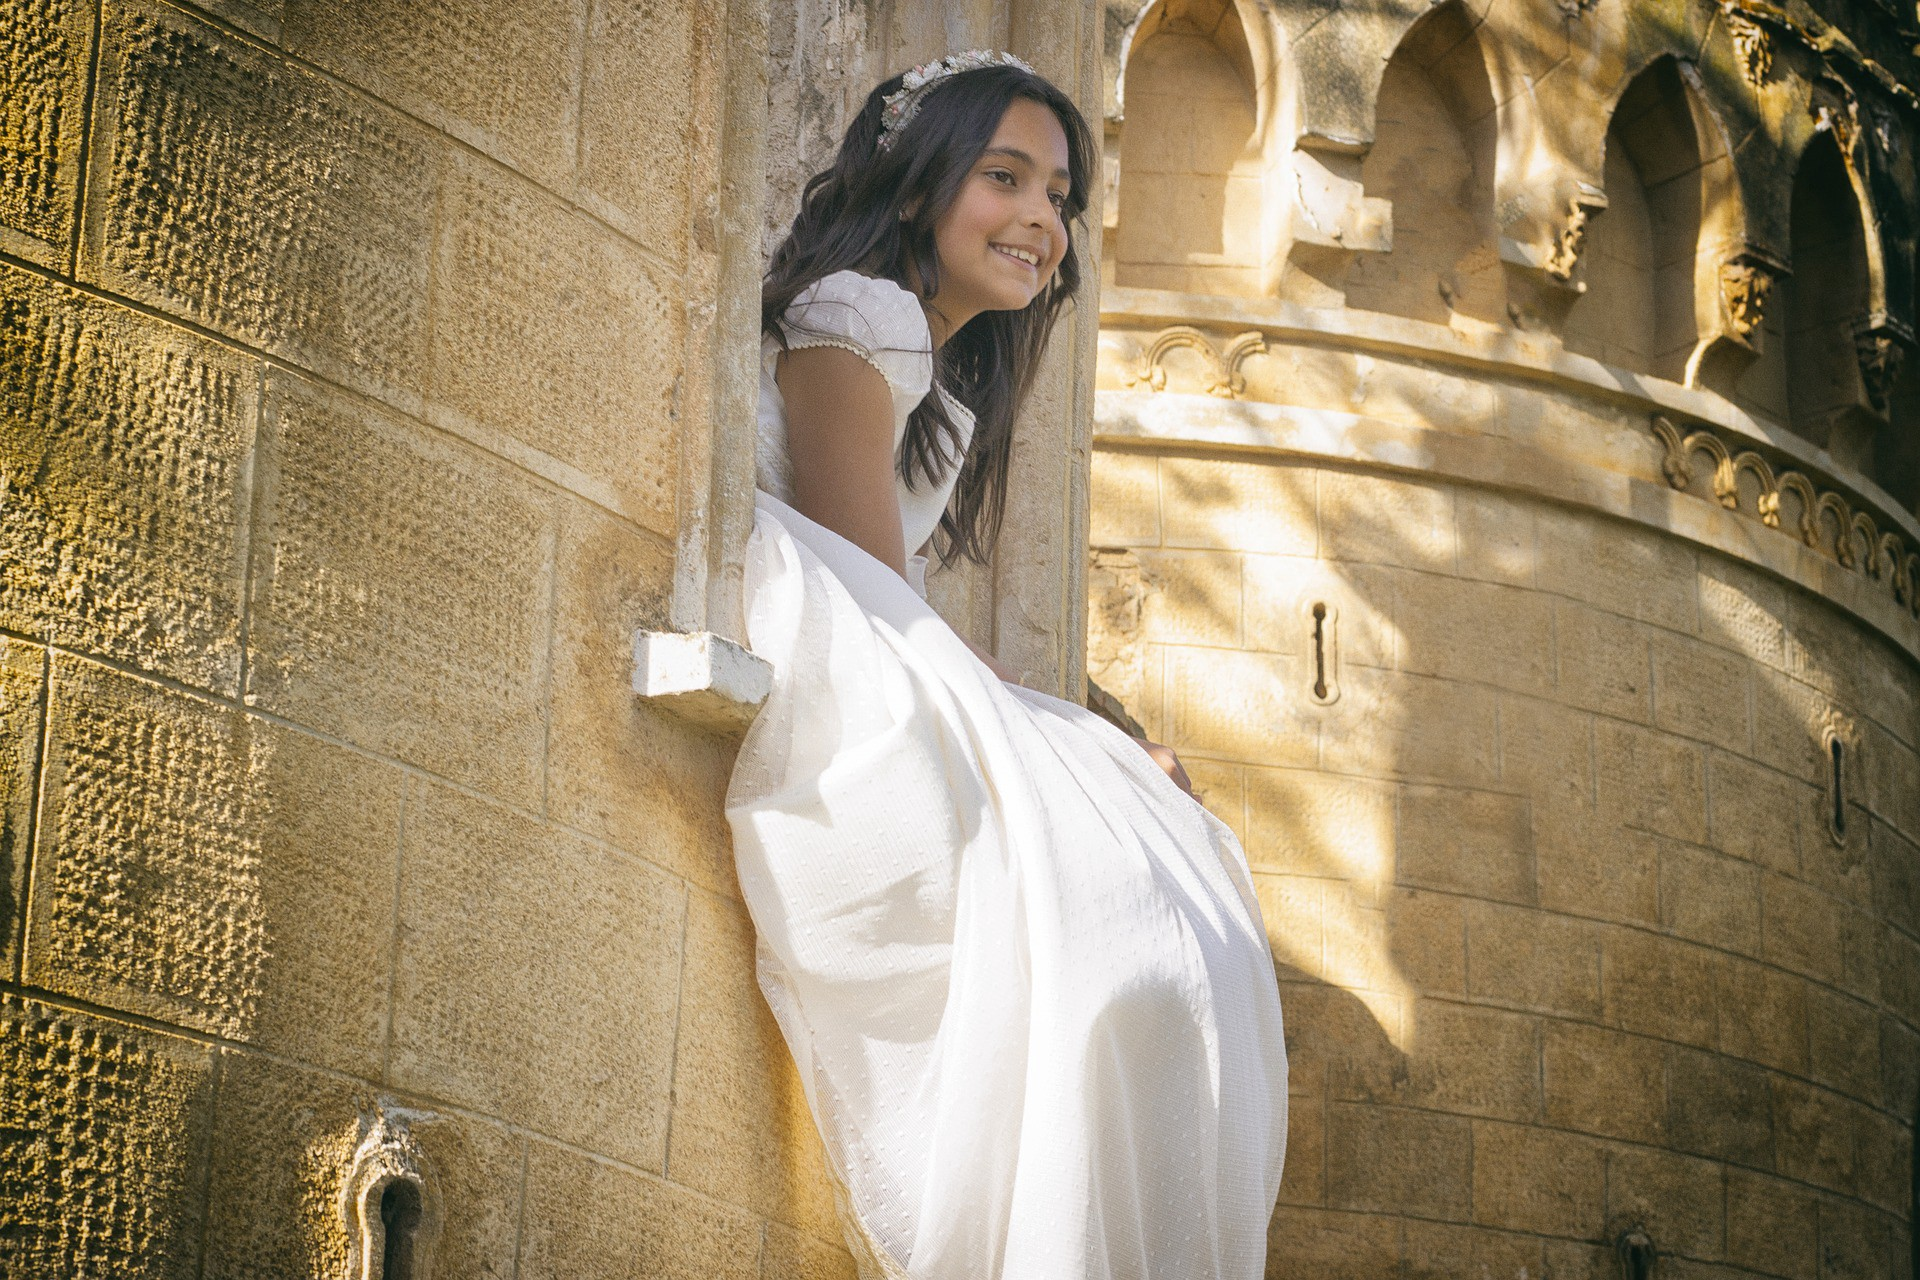 Pretty young girl in a white religious dress sitting in the window of an old cathedral and smiling into the sunlight